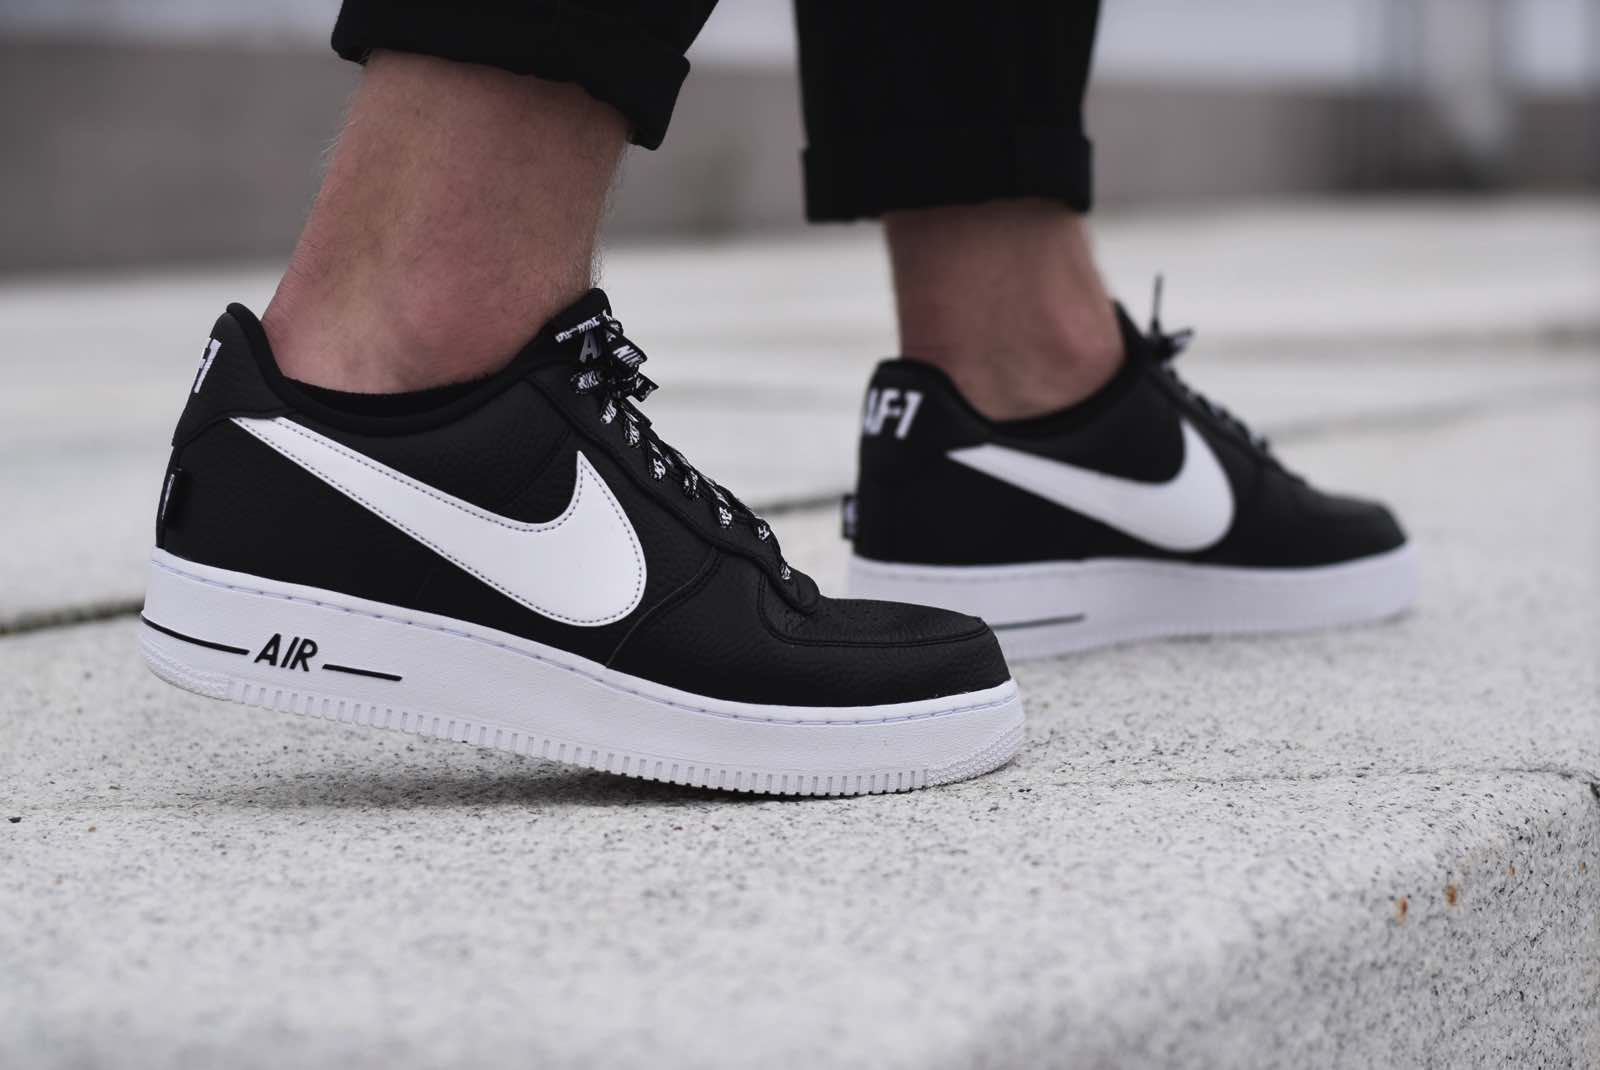 On Foot: Nike Air Force 1 Low